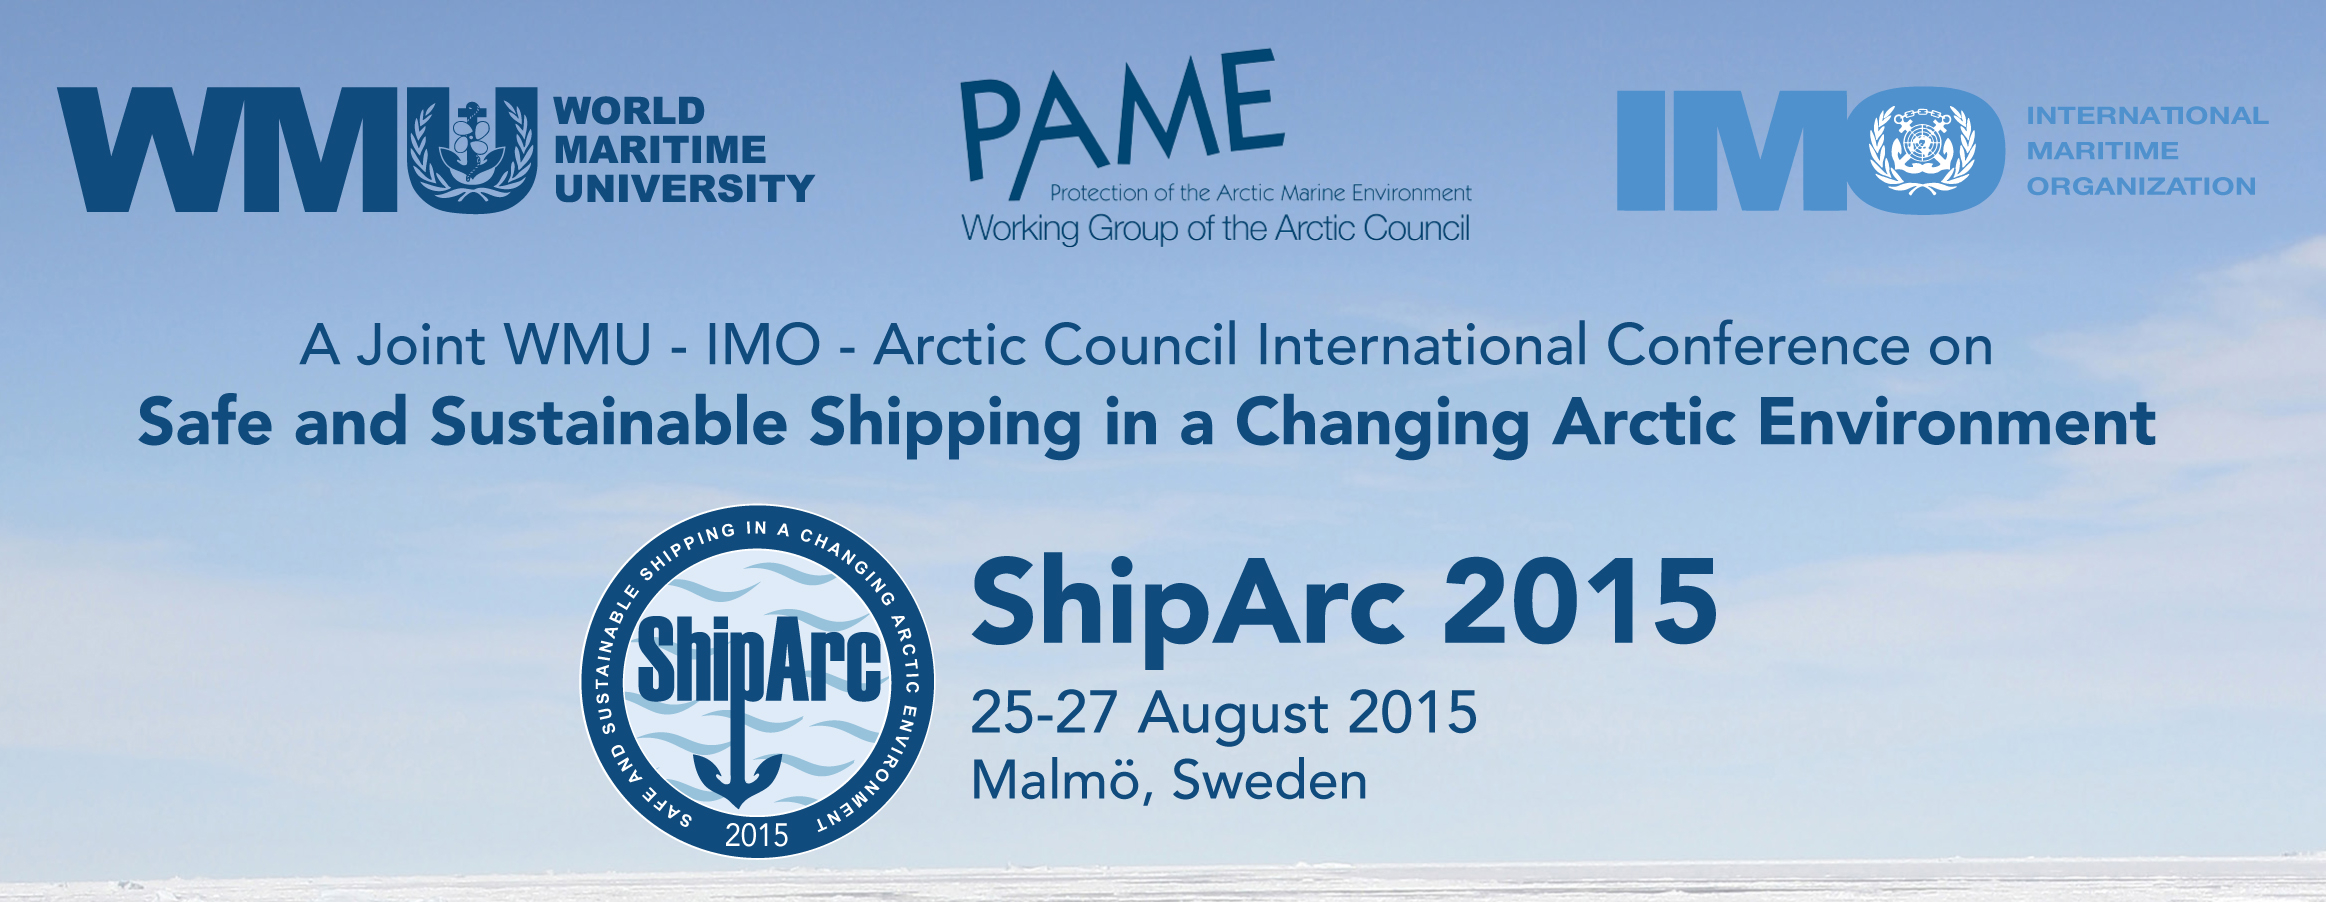 ShipArc 2015 Conference